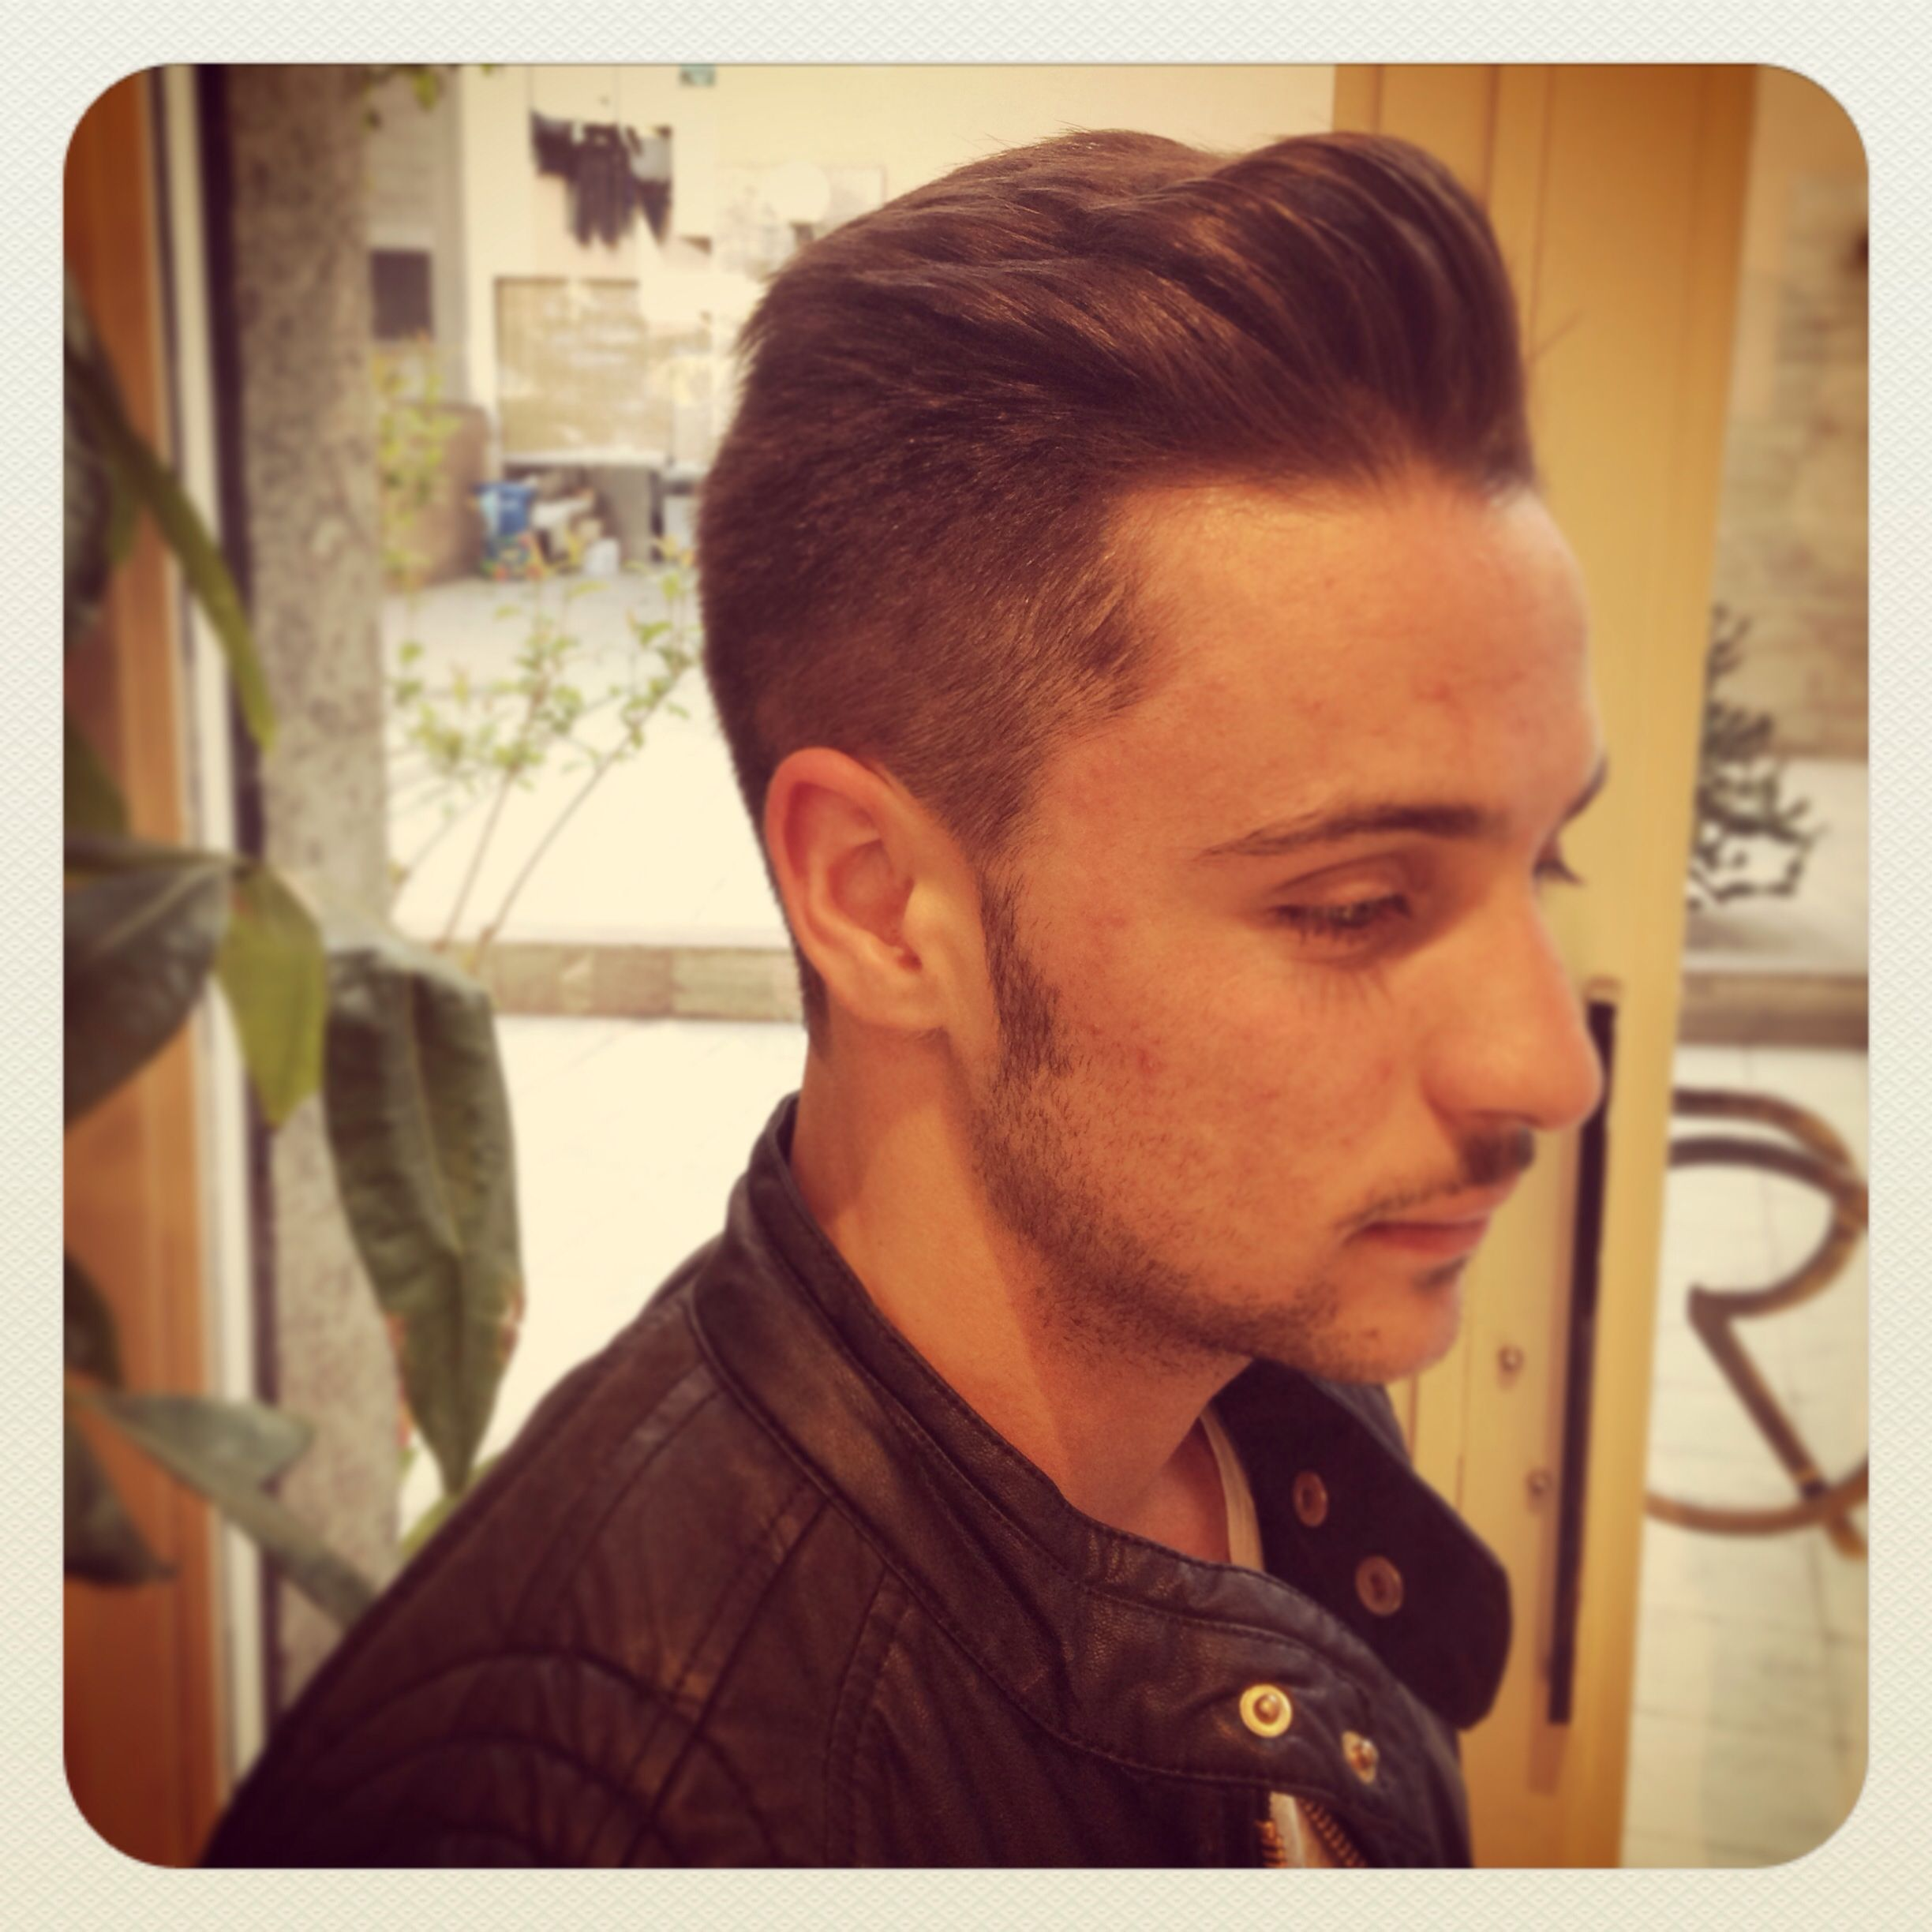 Bad mens haircuts top player   style   pinterest